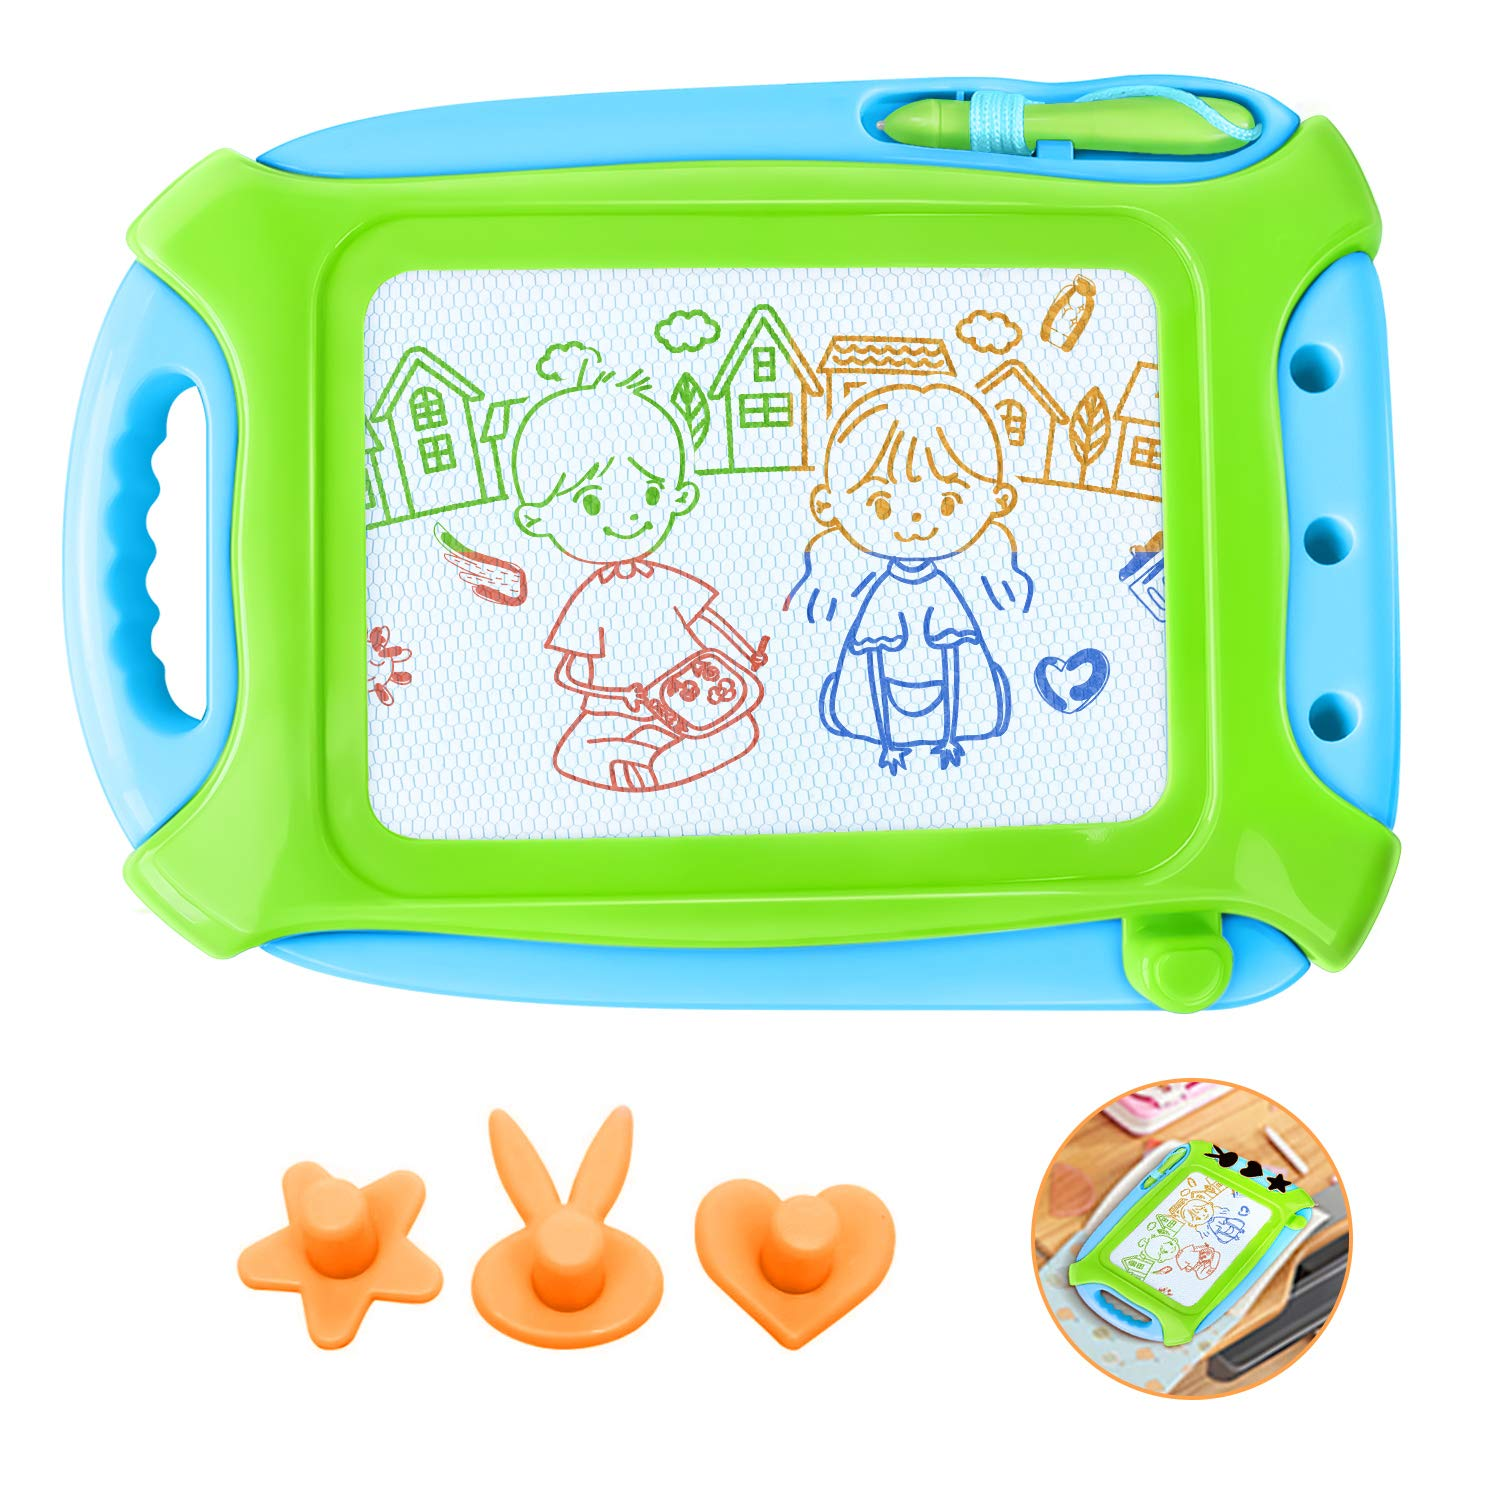 Haimst Magnetic Drawing Board For Toddlers Doodle Writing Board Painting Erasable Sketching Pad For Kids Travel Games Educational Toys Travel Size Green Buy Online In Antigua And Barbuda At Antigua Desertcart Com Productid